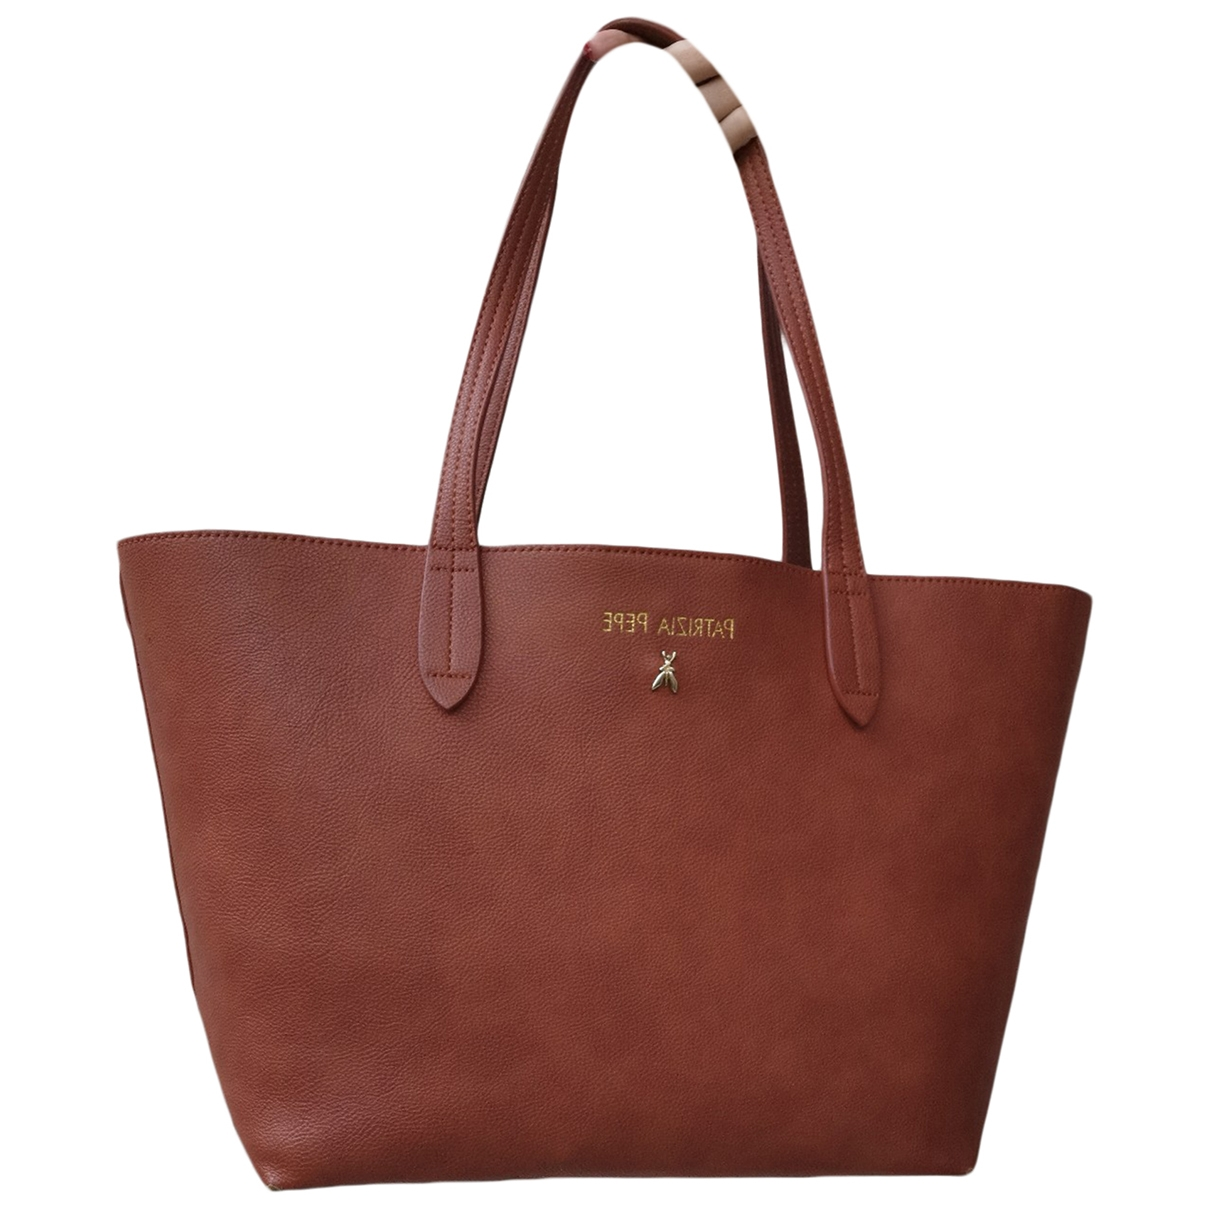 Patrizia Pepe \N Camel handbag for Women \N